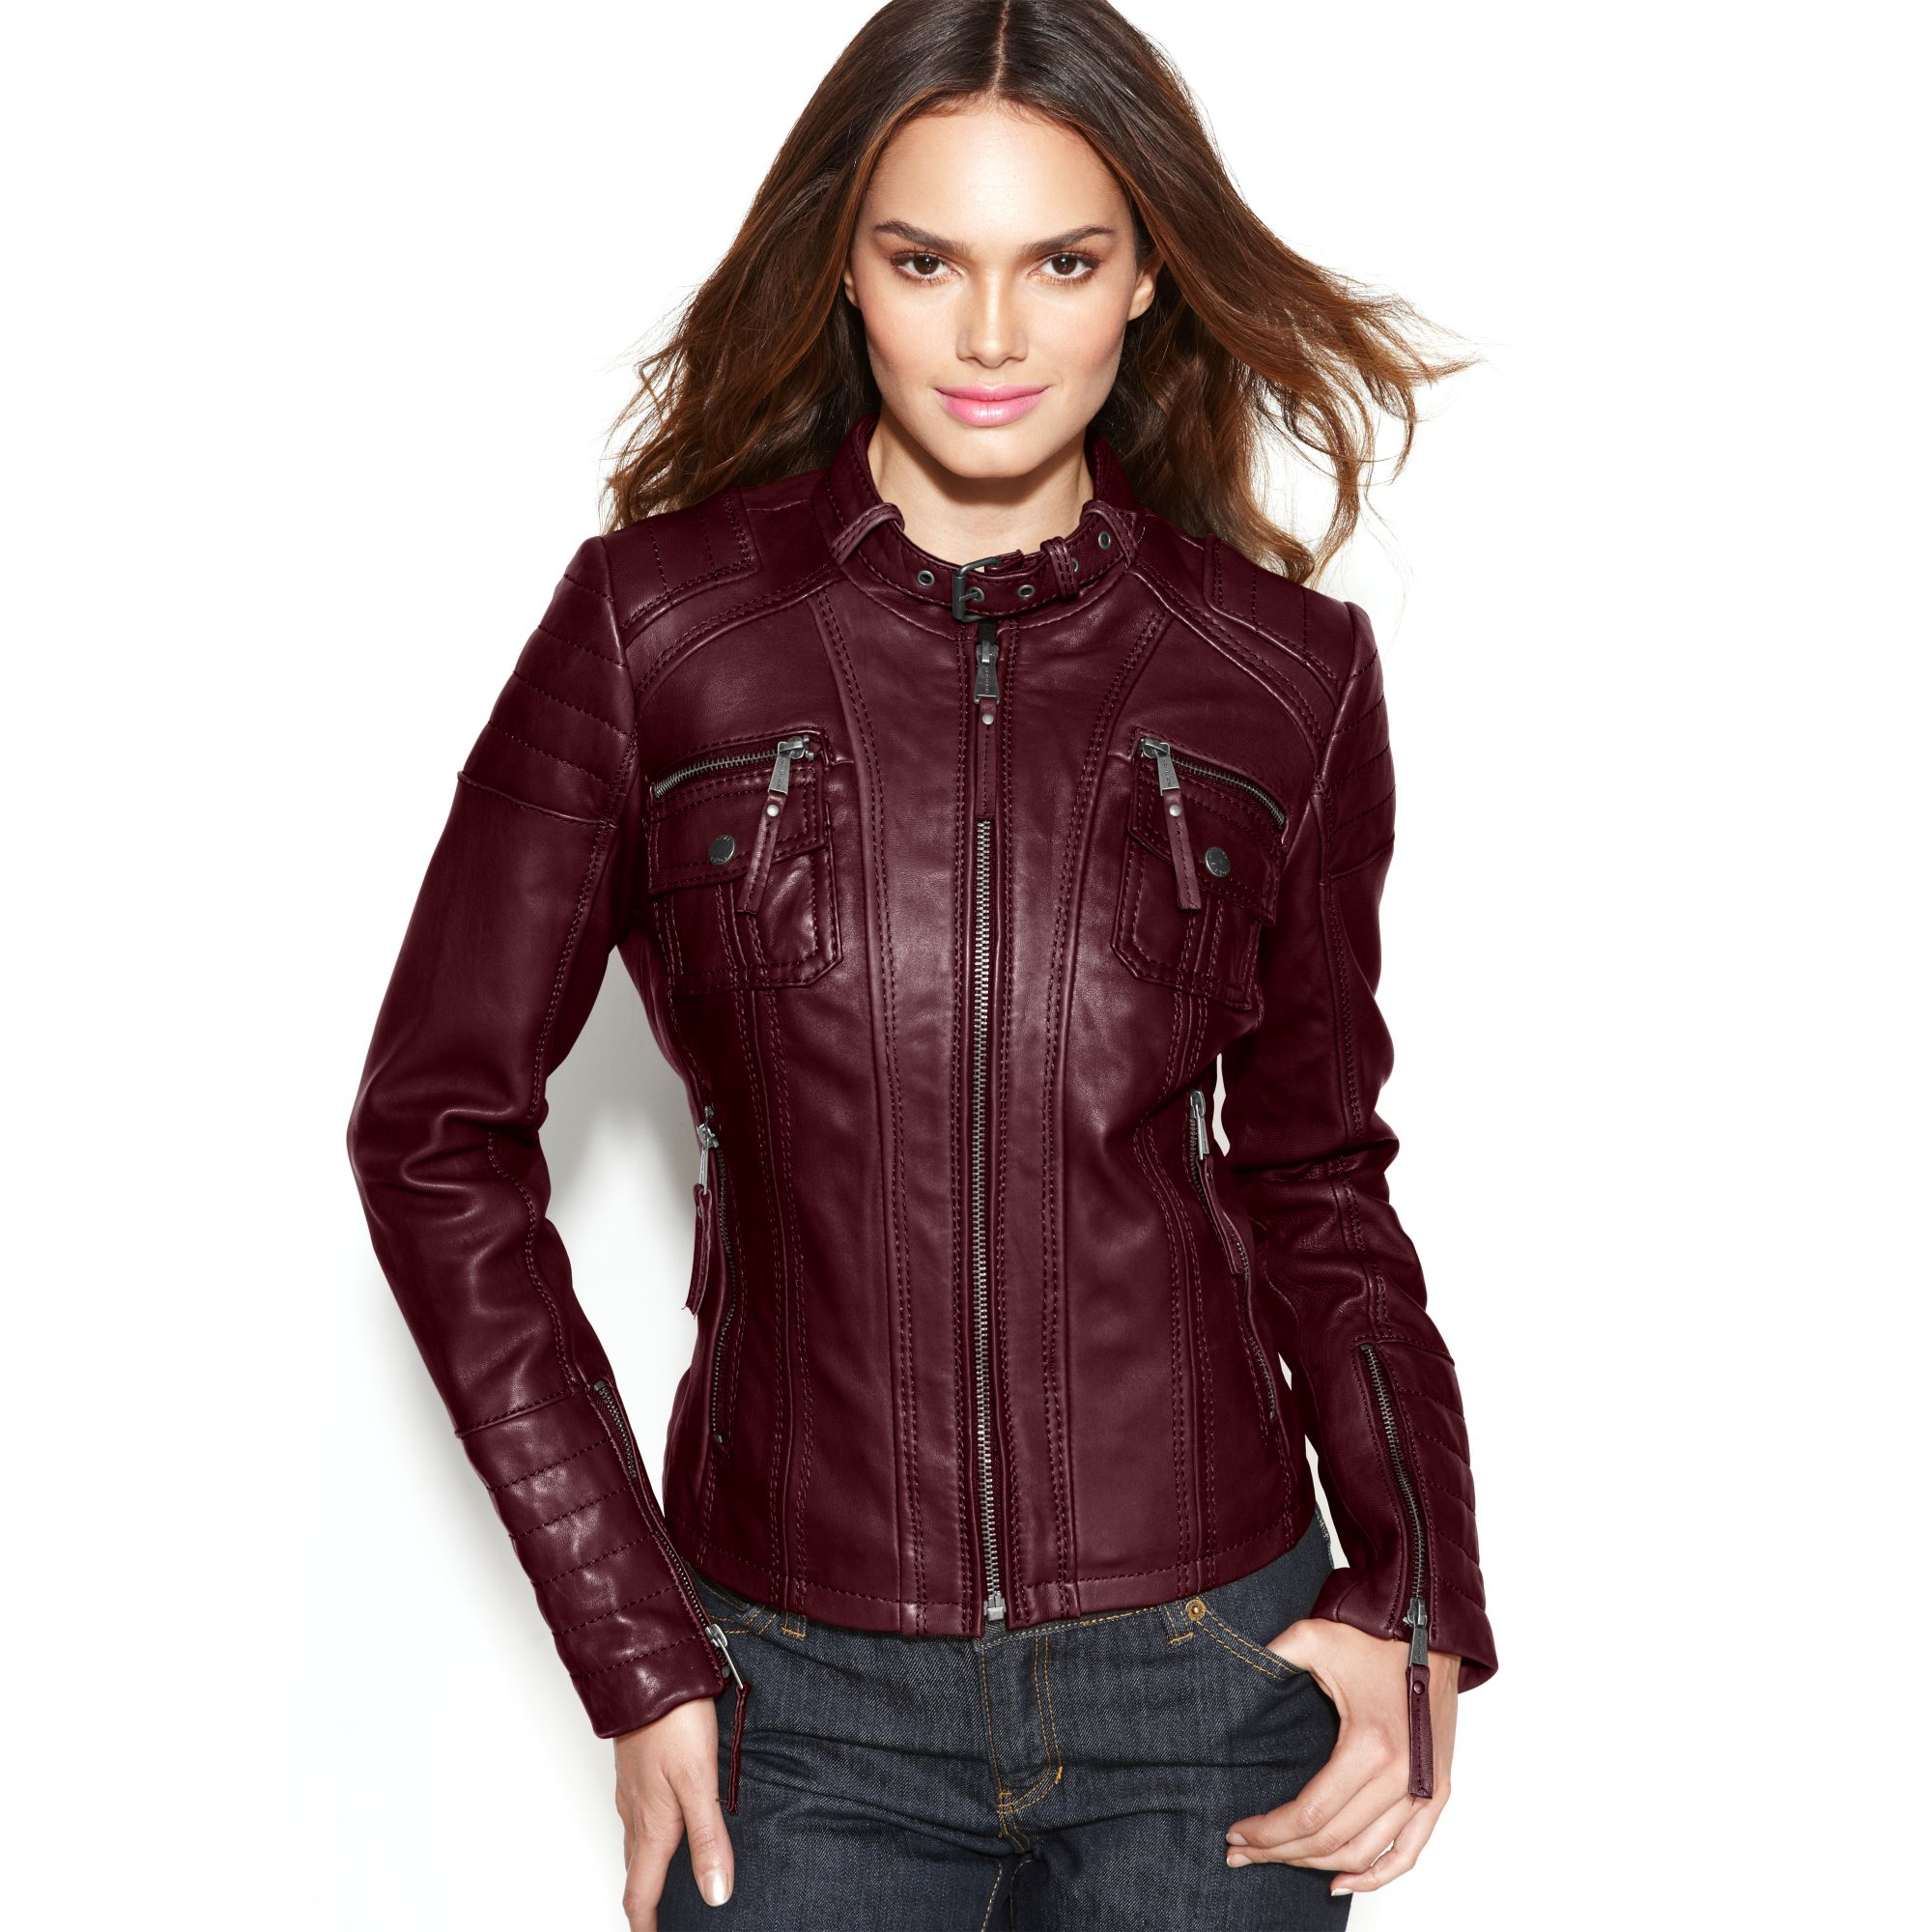 Michael kors leather bucklecollar motorcycle jacket in red for Red leather shirt for womens